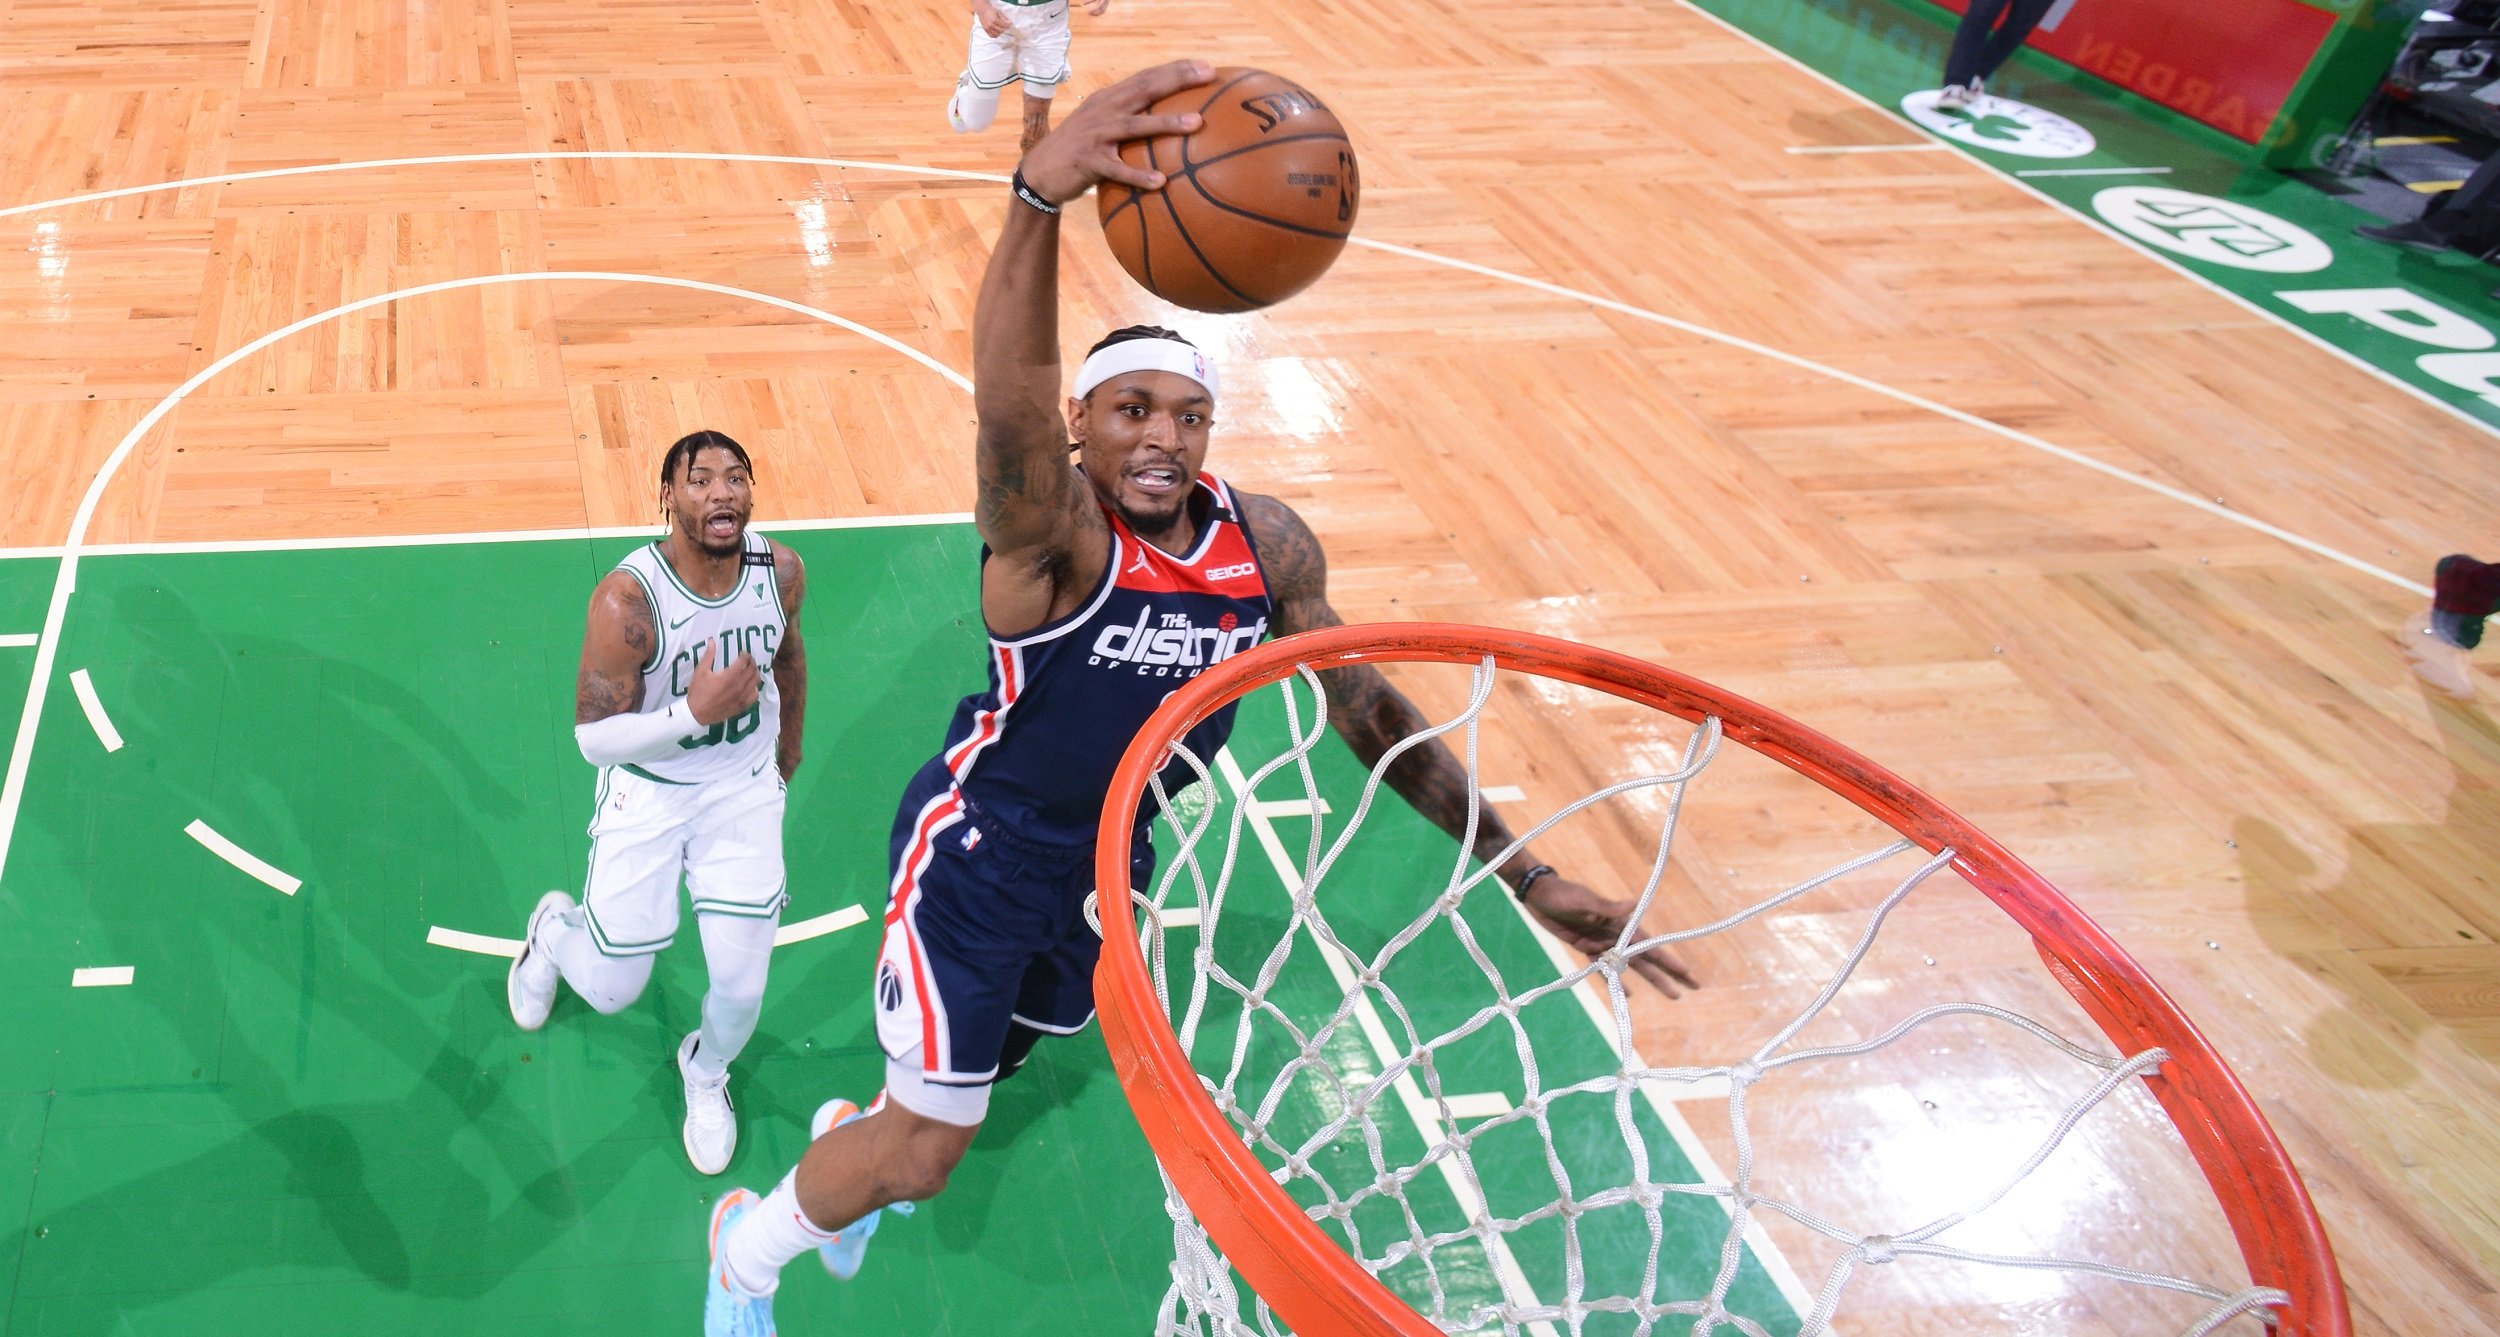 LIVE on TNT: Celtics (7) vs. Wizards (8)